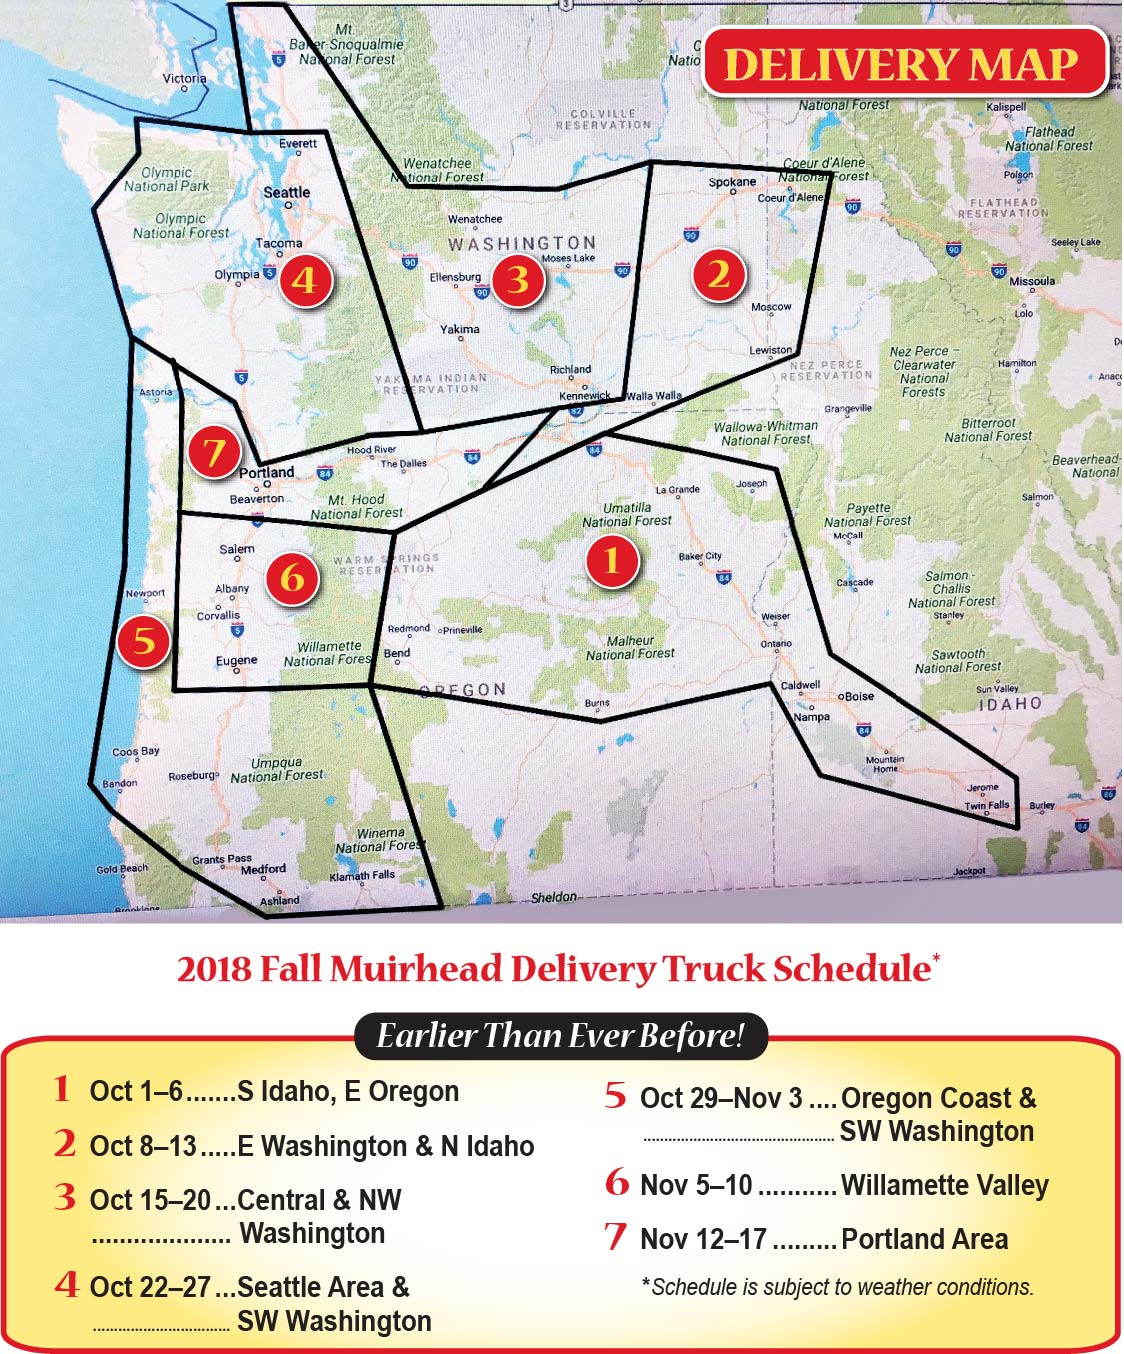 11/20/18 Delivery Schedule Update: Due to several delays, the dates displayed above are no longer accurate. For approximate dates for each area, please call us at 541-298-1660. Thank you.